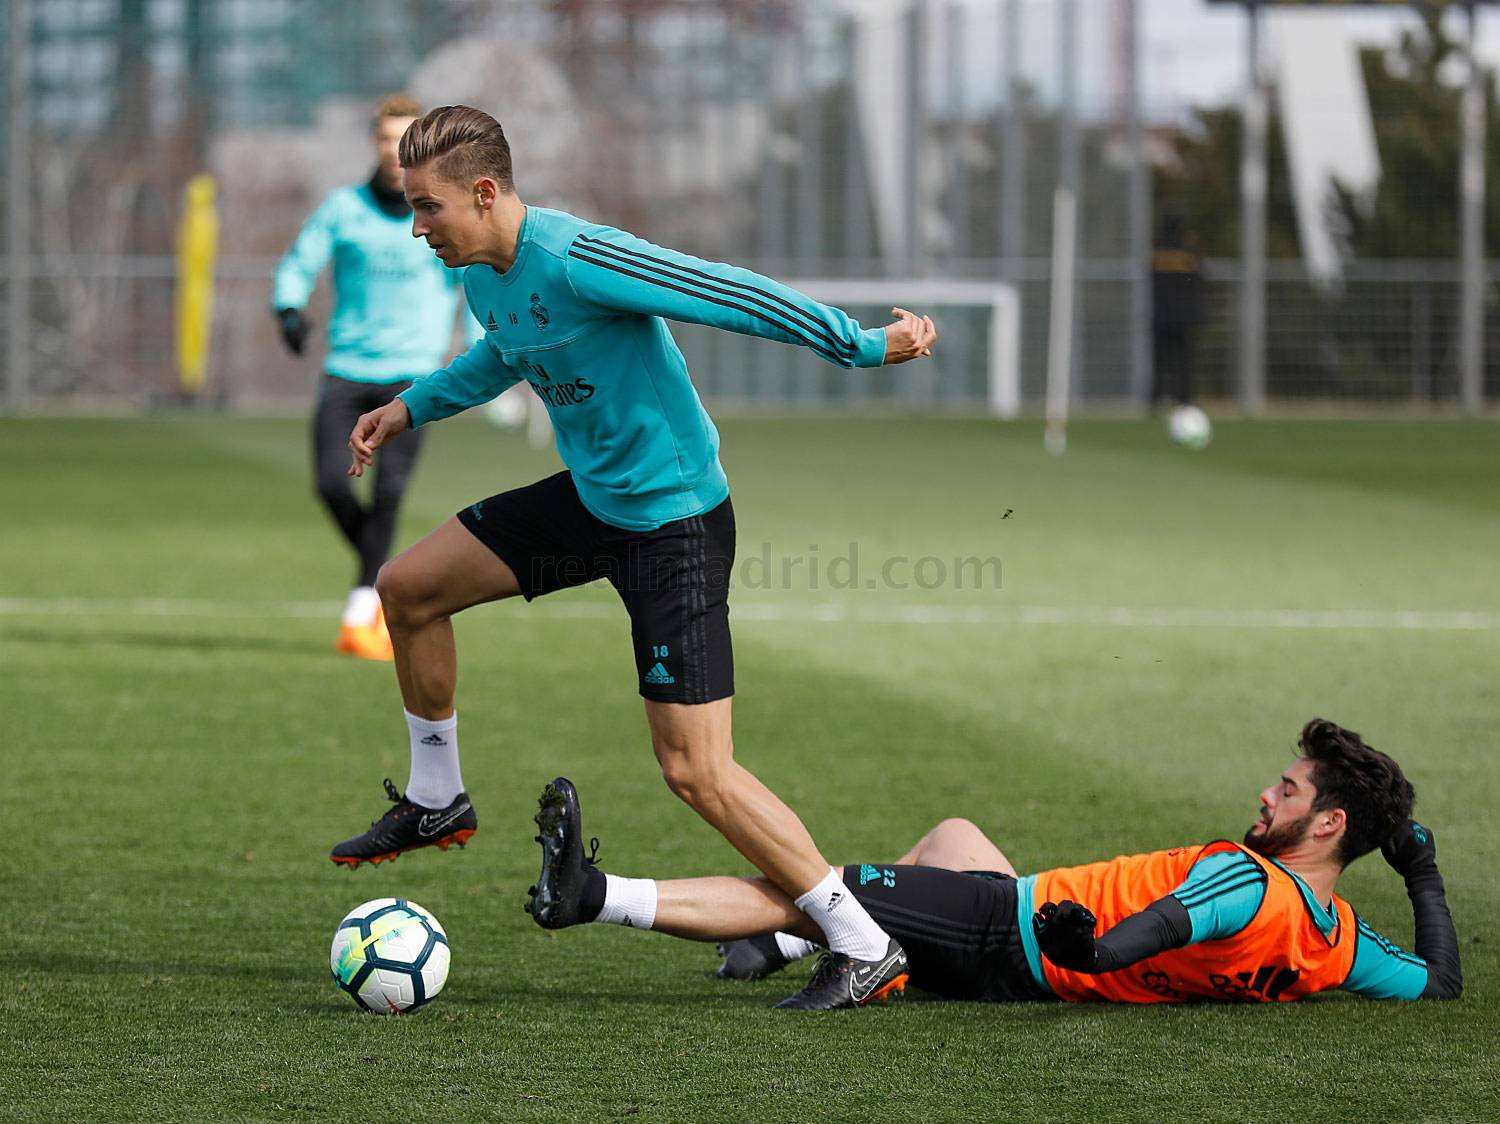 Real Madrid - Entrenamiento del Real Madrid - 15-03-2018